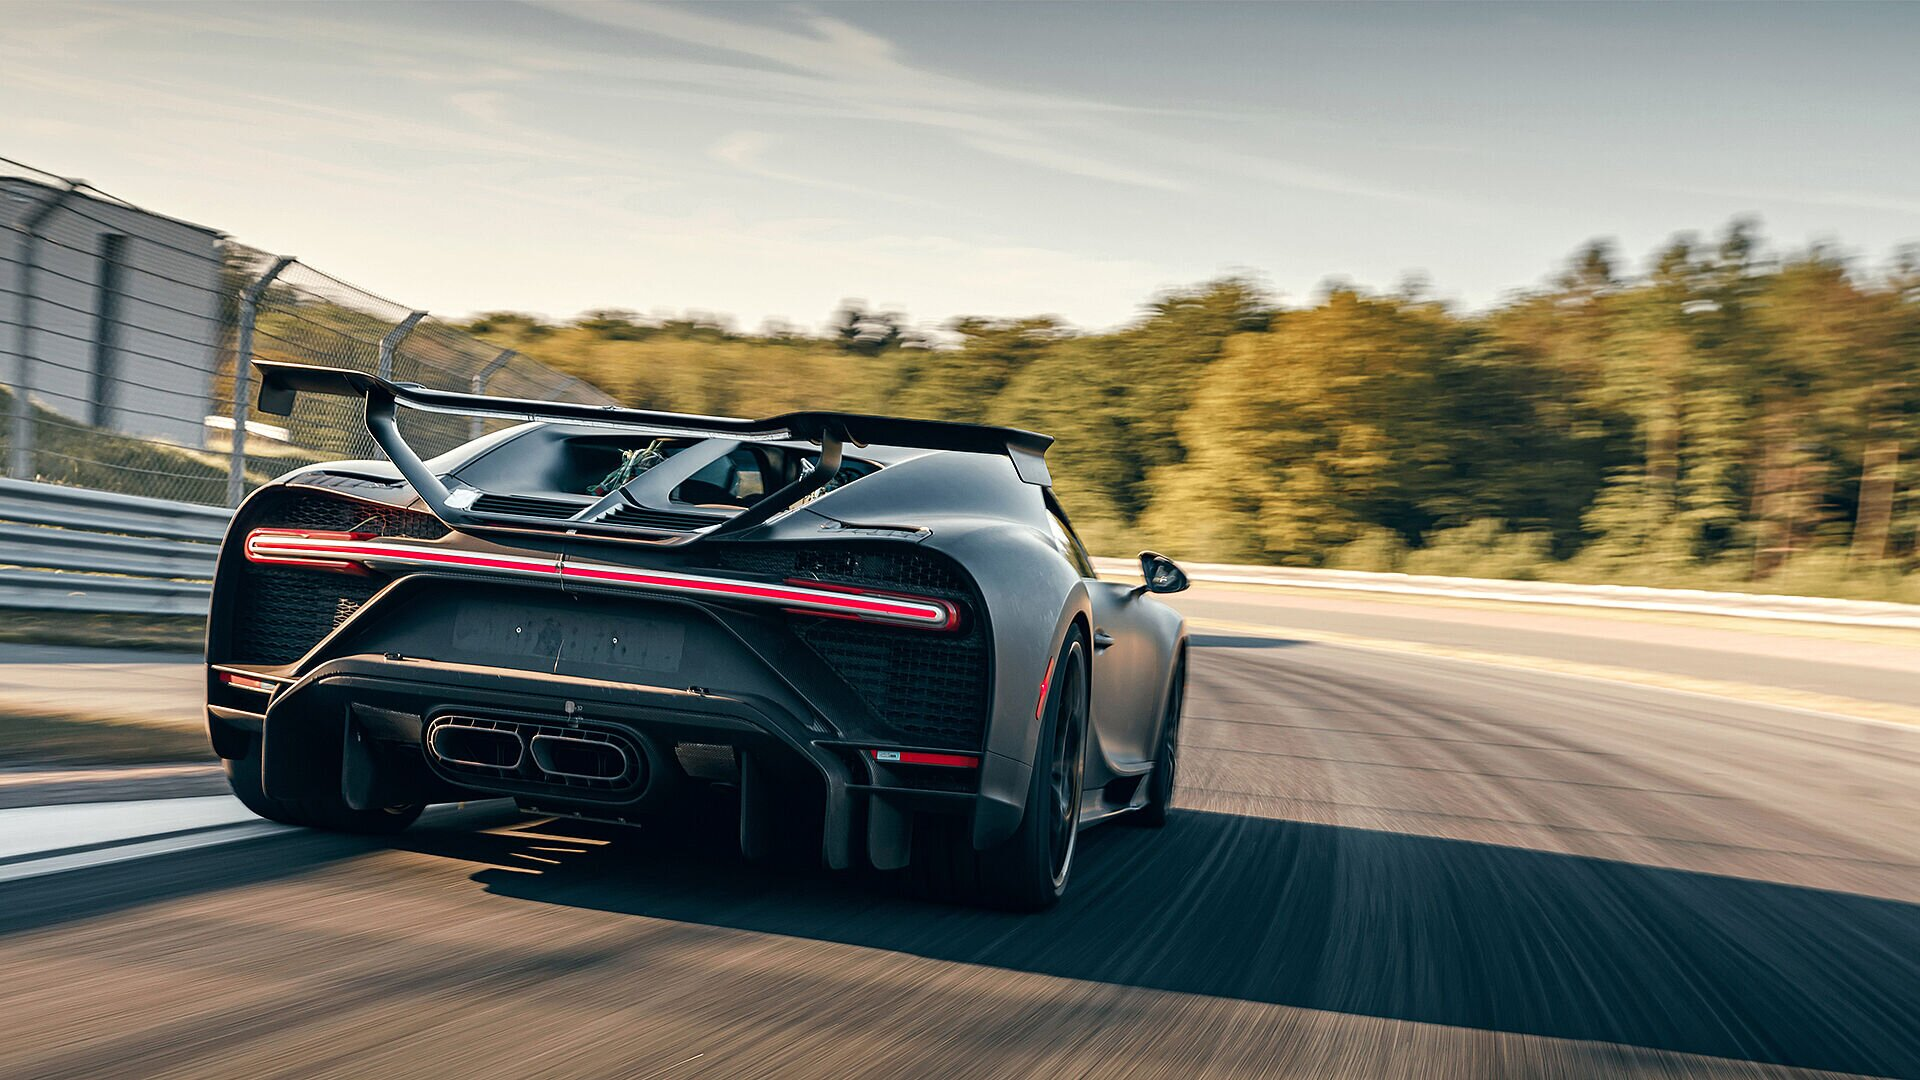 Fine-tuning the Chiron Pur Sport on the test track - Image 4